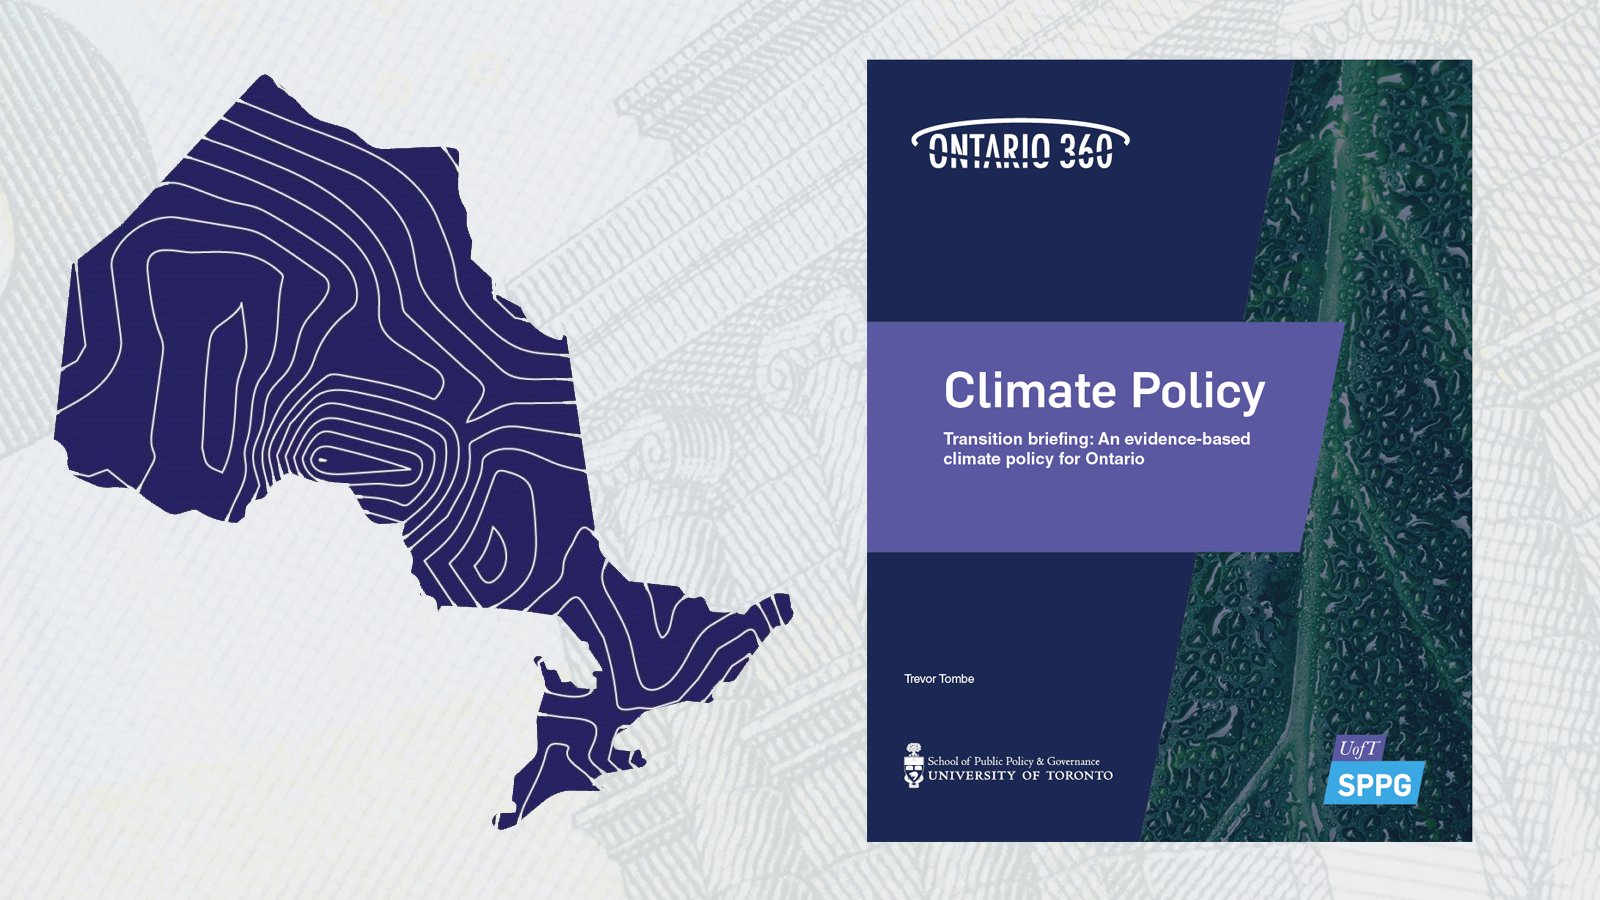 Climate policy ontario 360 feature image showing cover for climate policy print edition publicscrutiny Image collections